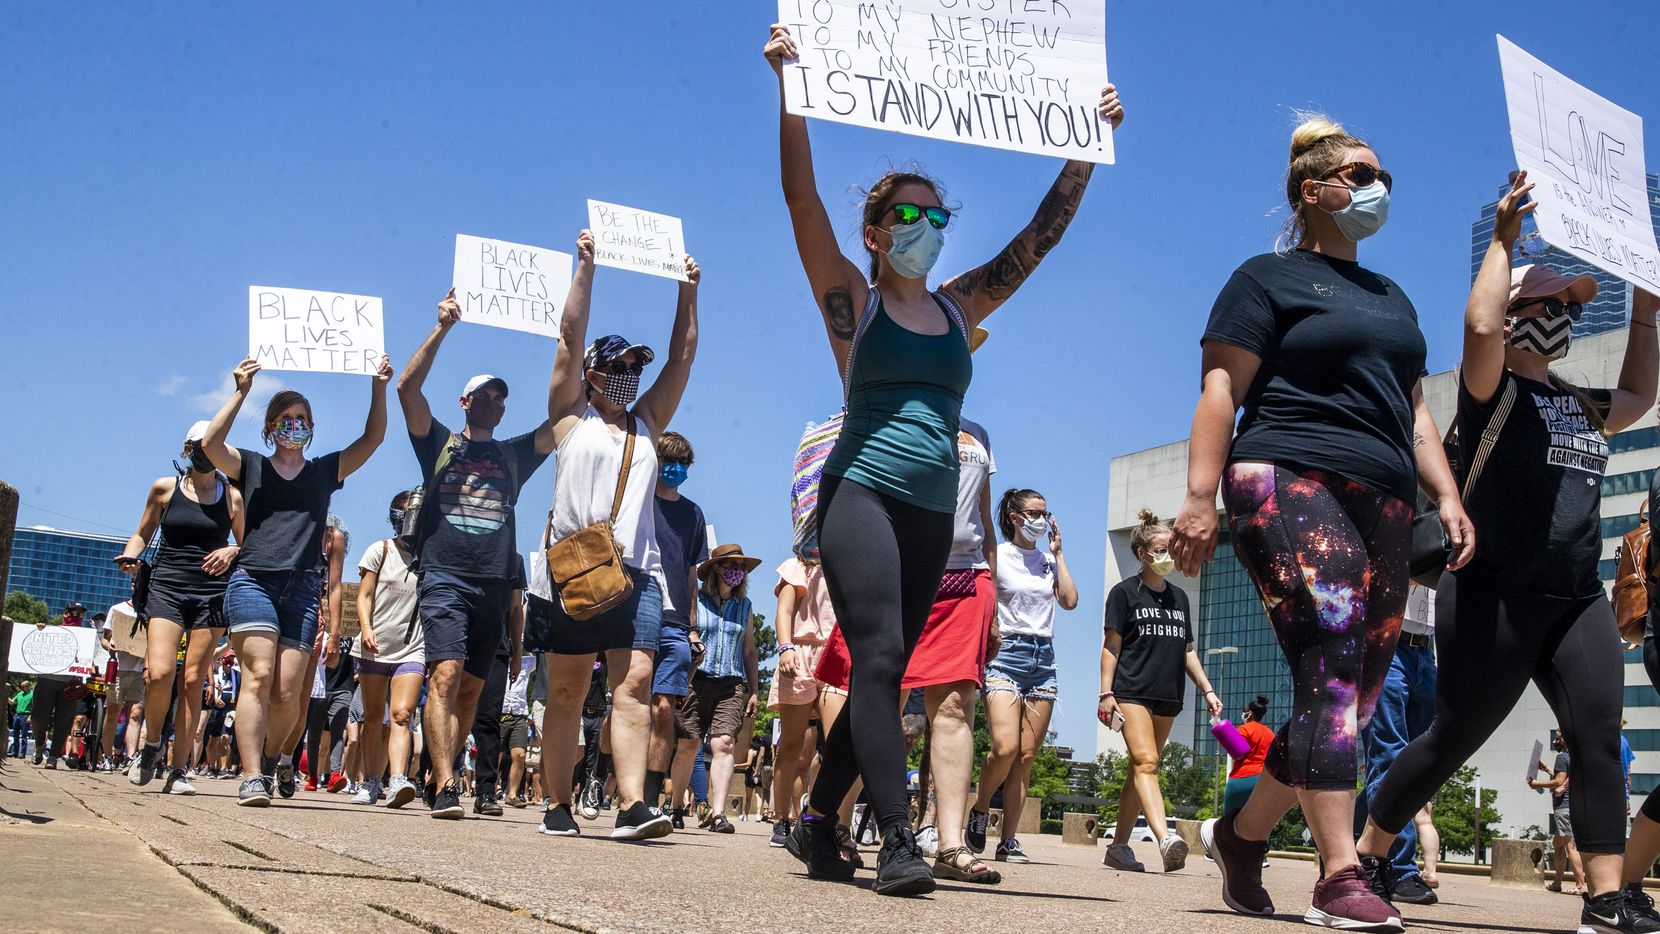 Protesters march in a silent demonstration at Dallas City Hall to denounce police brutality and systemic racism in Dallas on Thursday, June 4, 2020. The demonstration took place on the seventh day of organized protests in response to the recent deaths of George Floyd in Minneapolis and Breonna Taylor in Louisville.